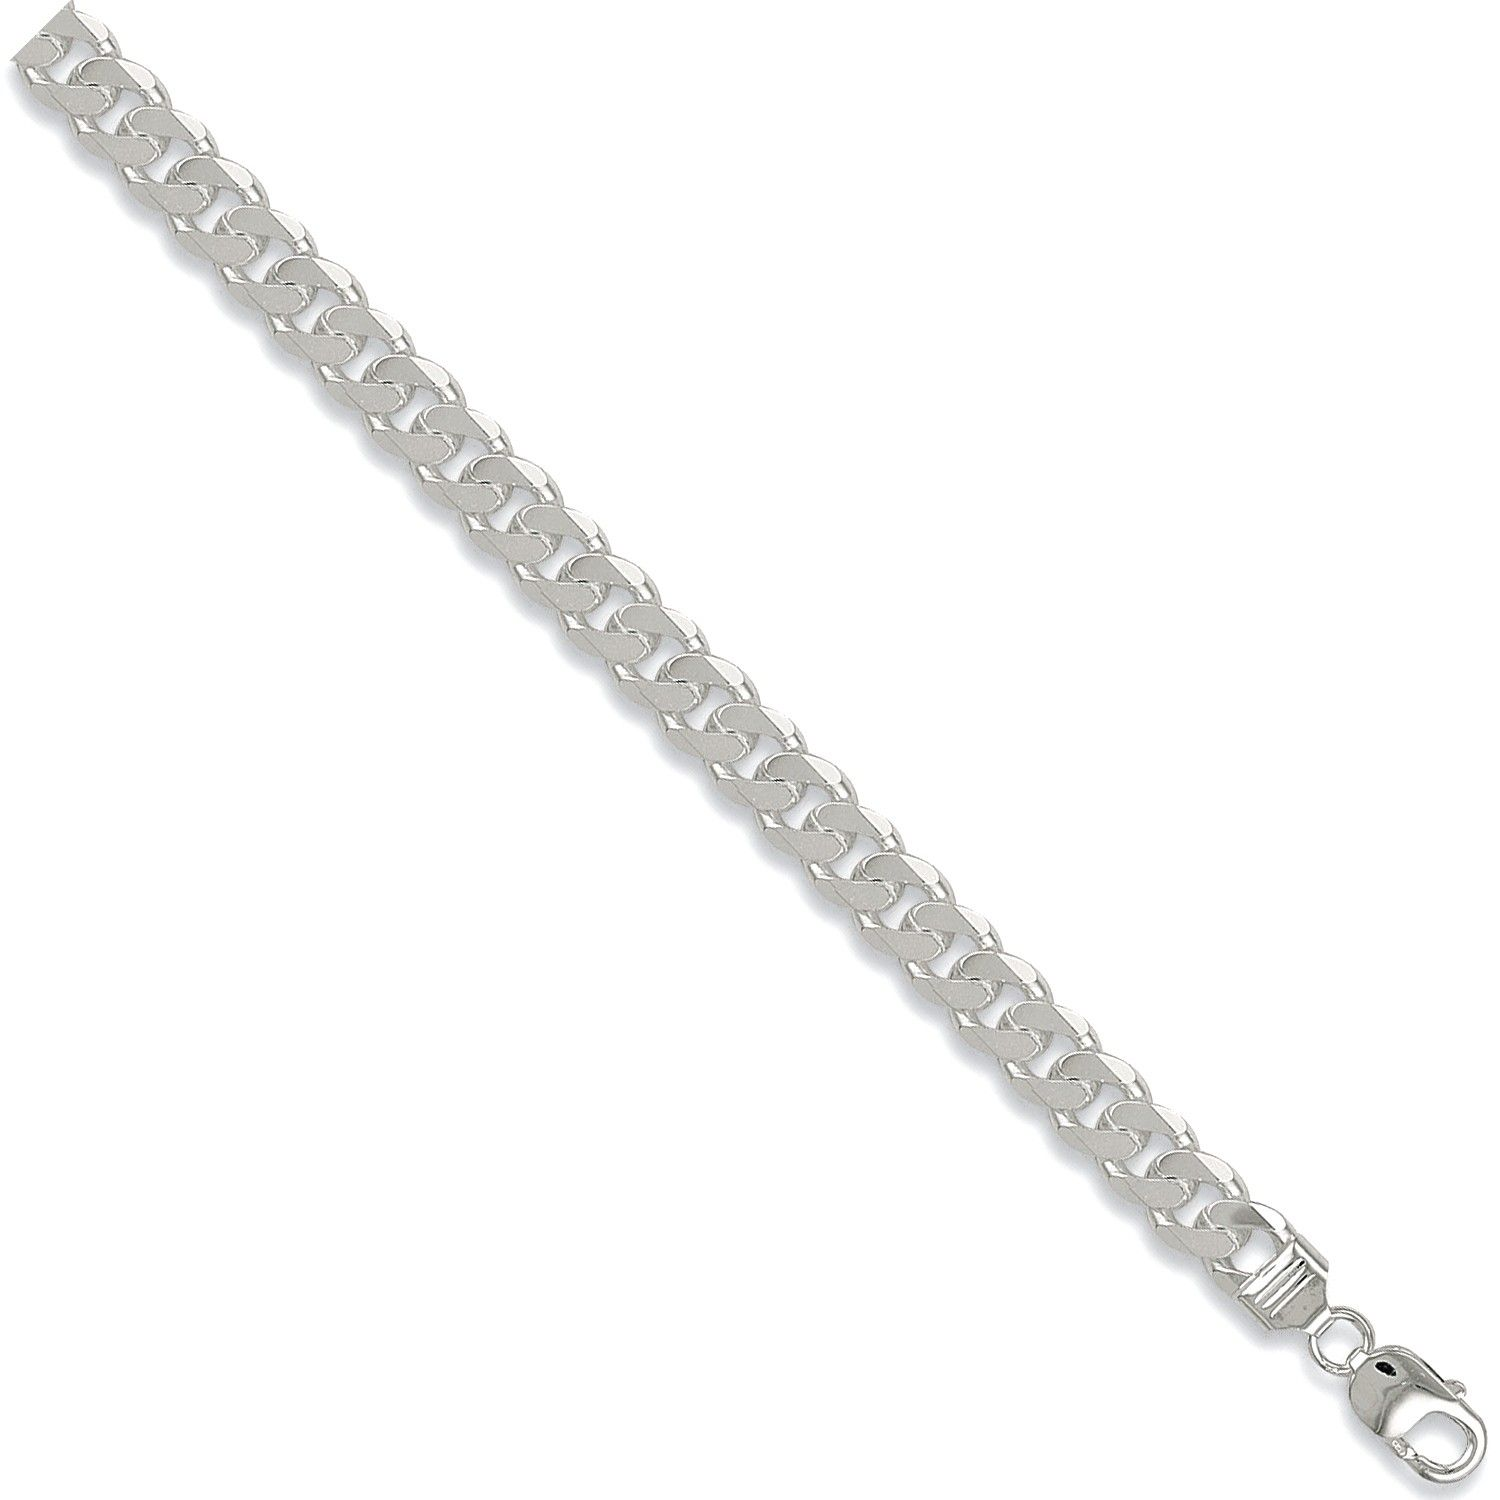 Silver 9.5mm Necklace Chain